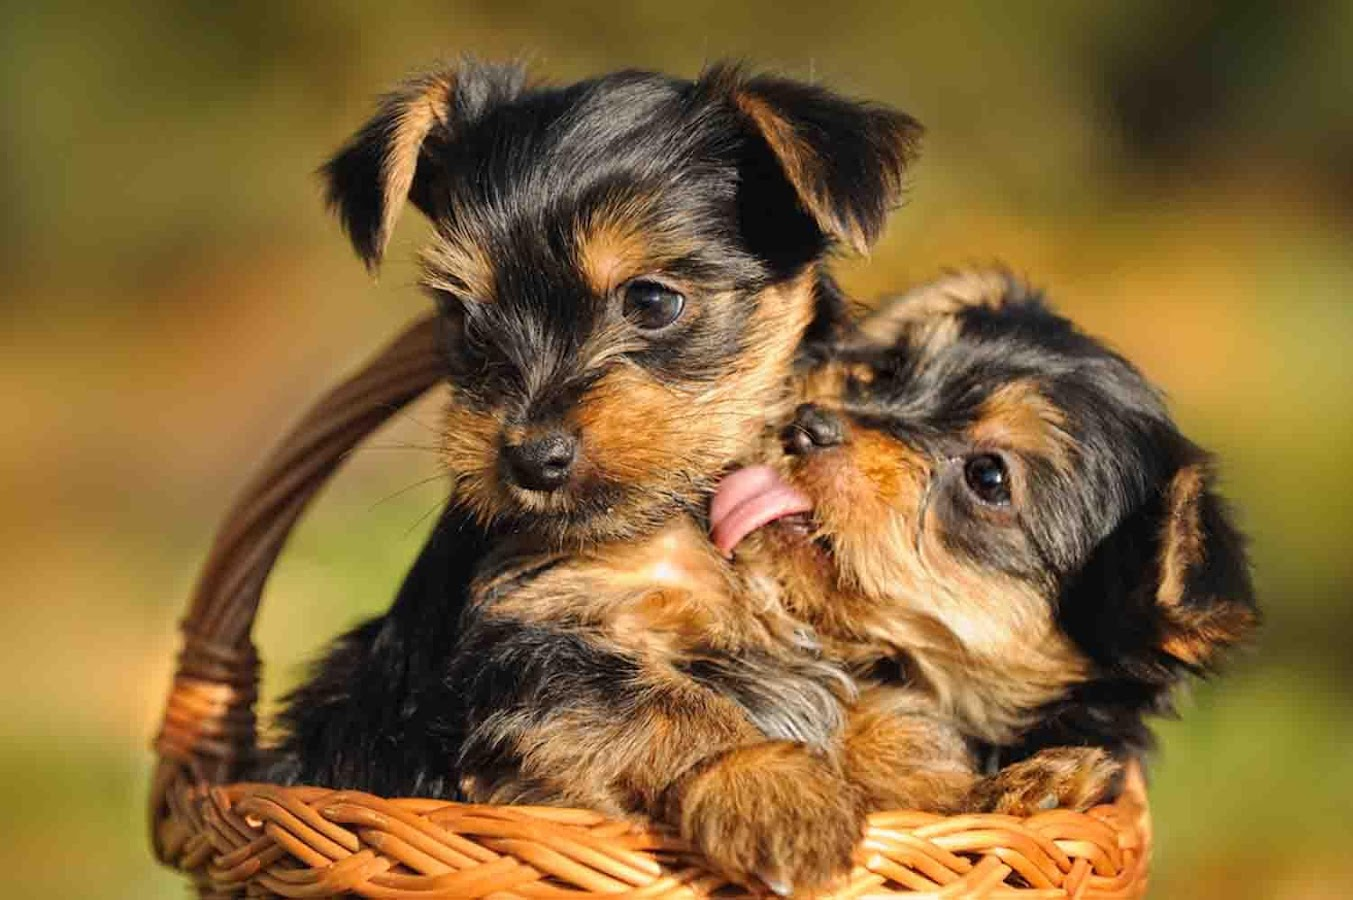 Yorkie Puppy Wallpaper - Android Apps on Google Play